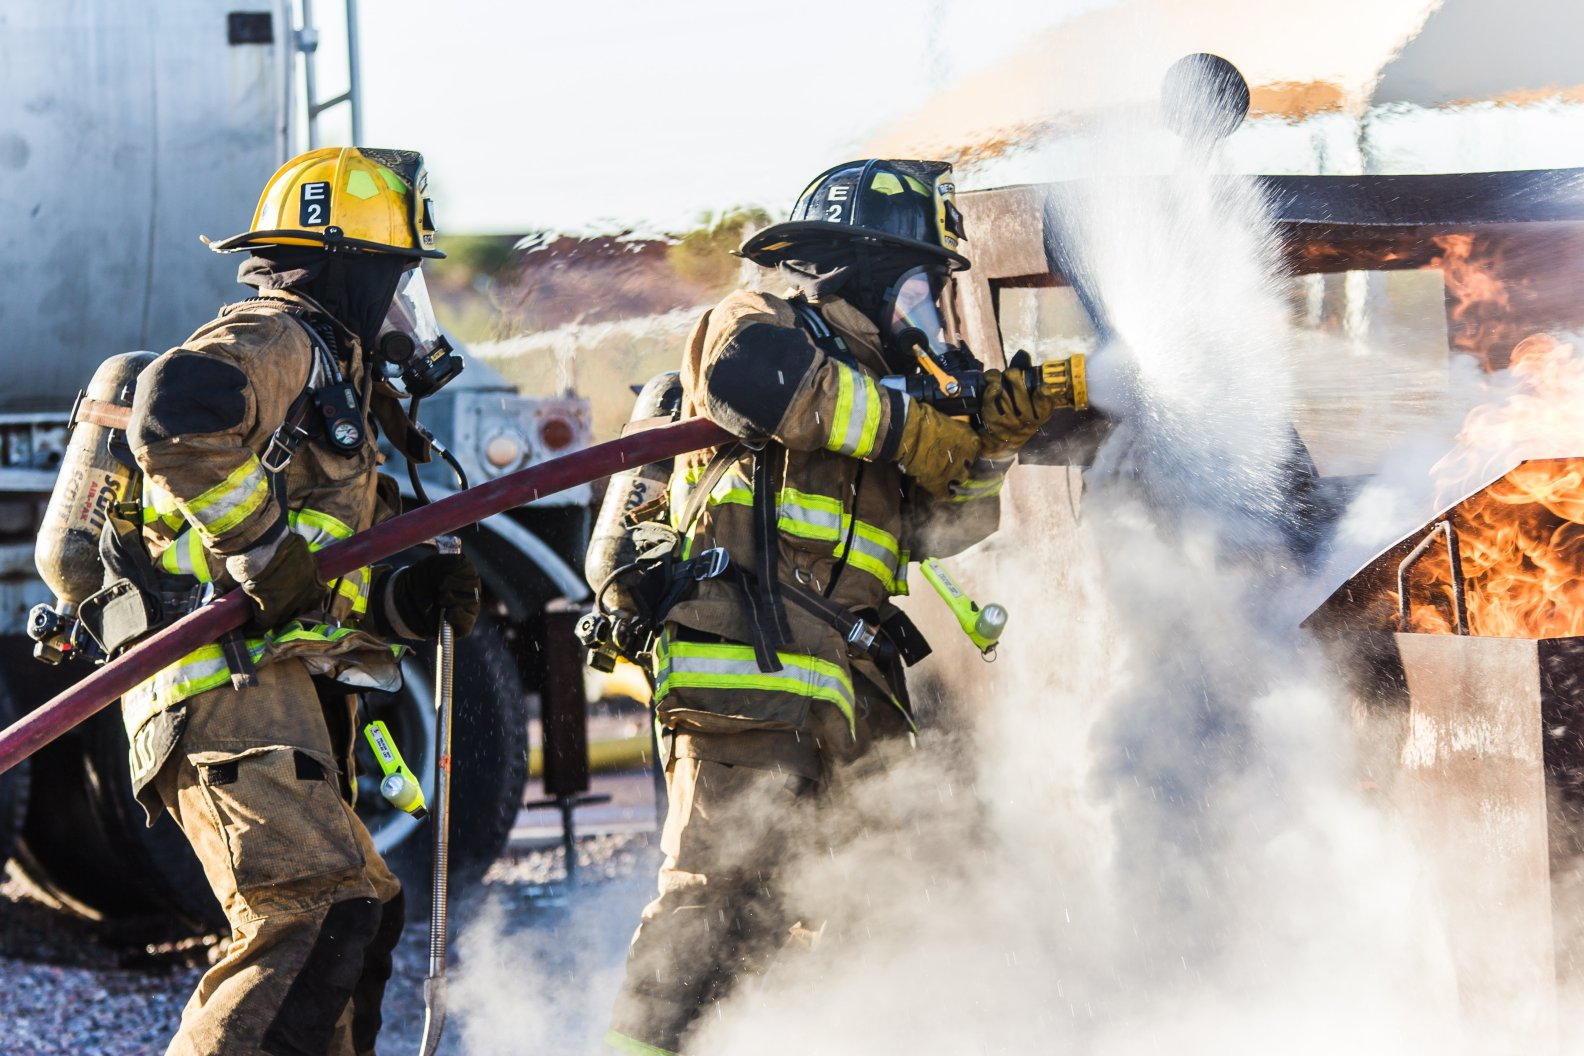 Whitepaper:  Delivering situational awareness to first responders through vertical location